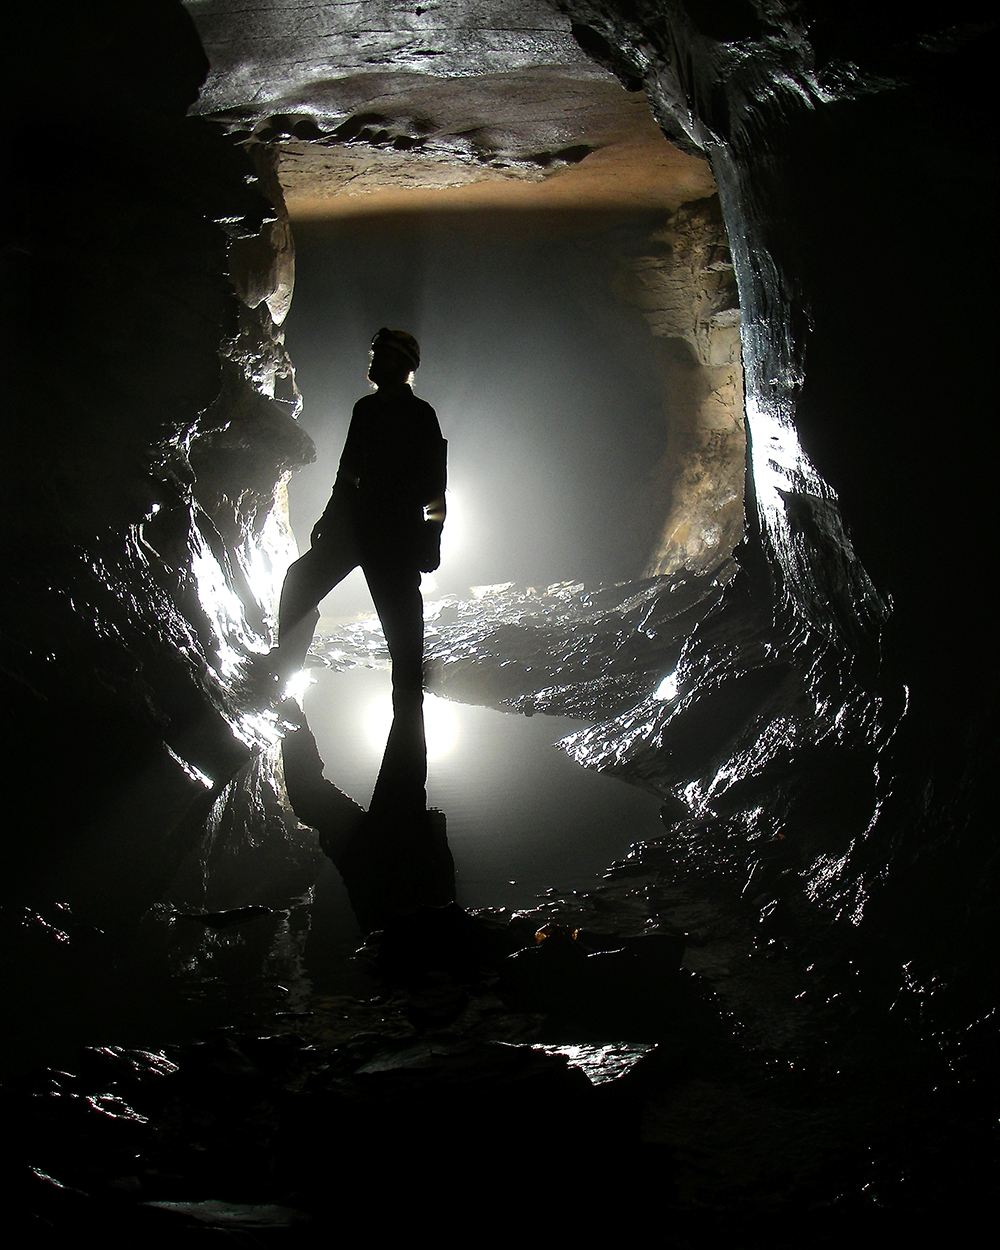 Frog Hollow Cave